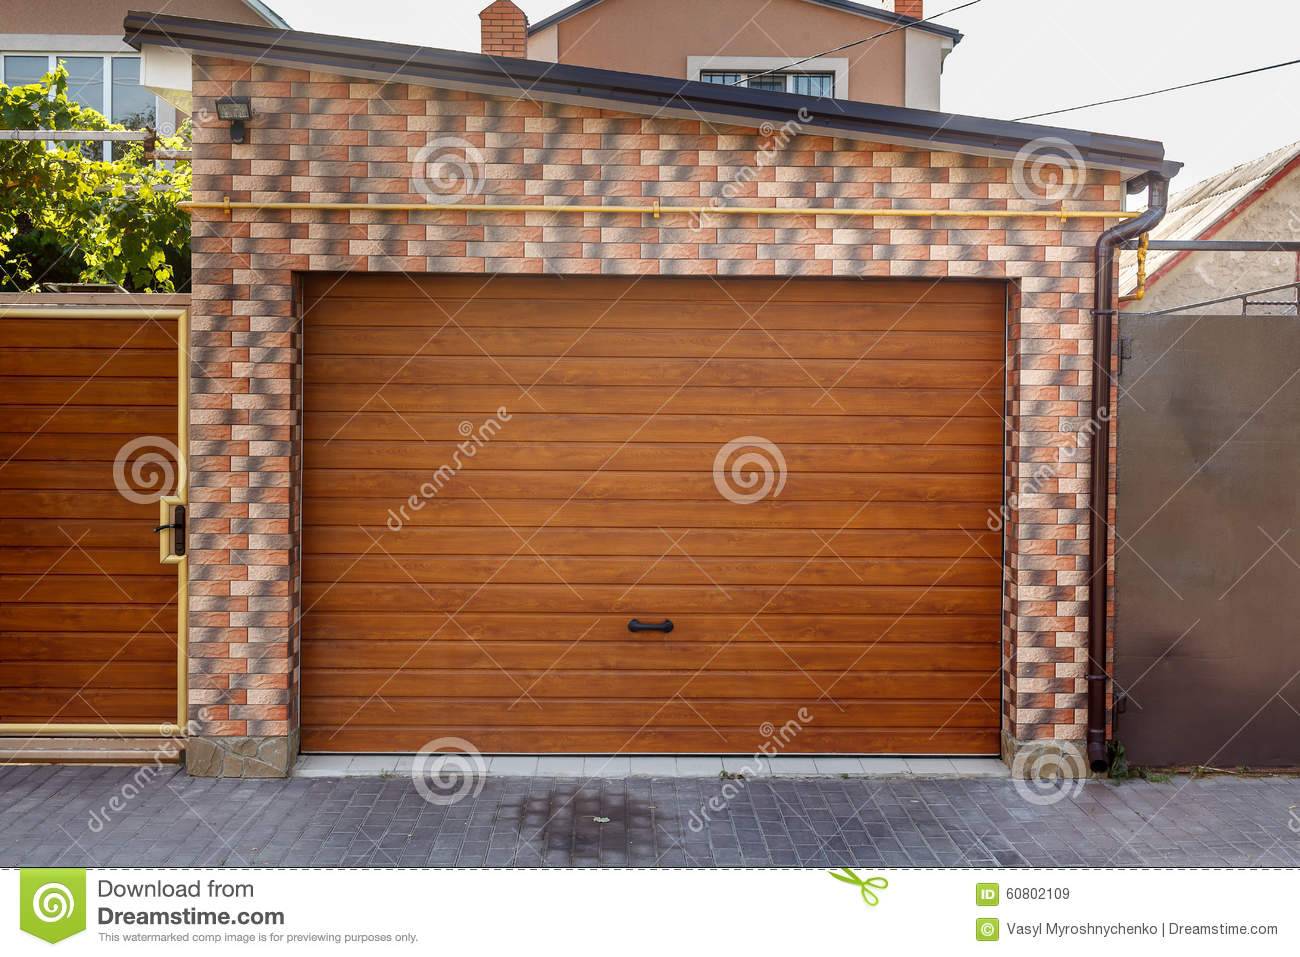 Wooden garage door with colored brick wall background for Brick garages prices